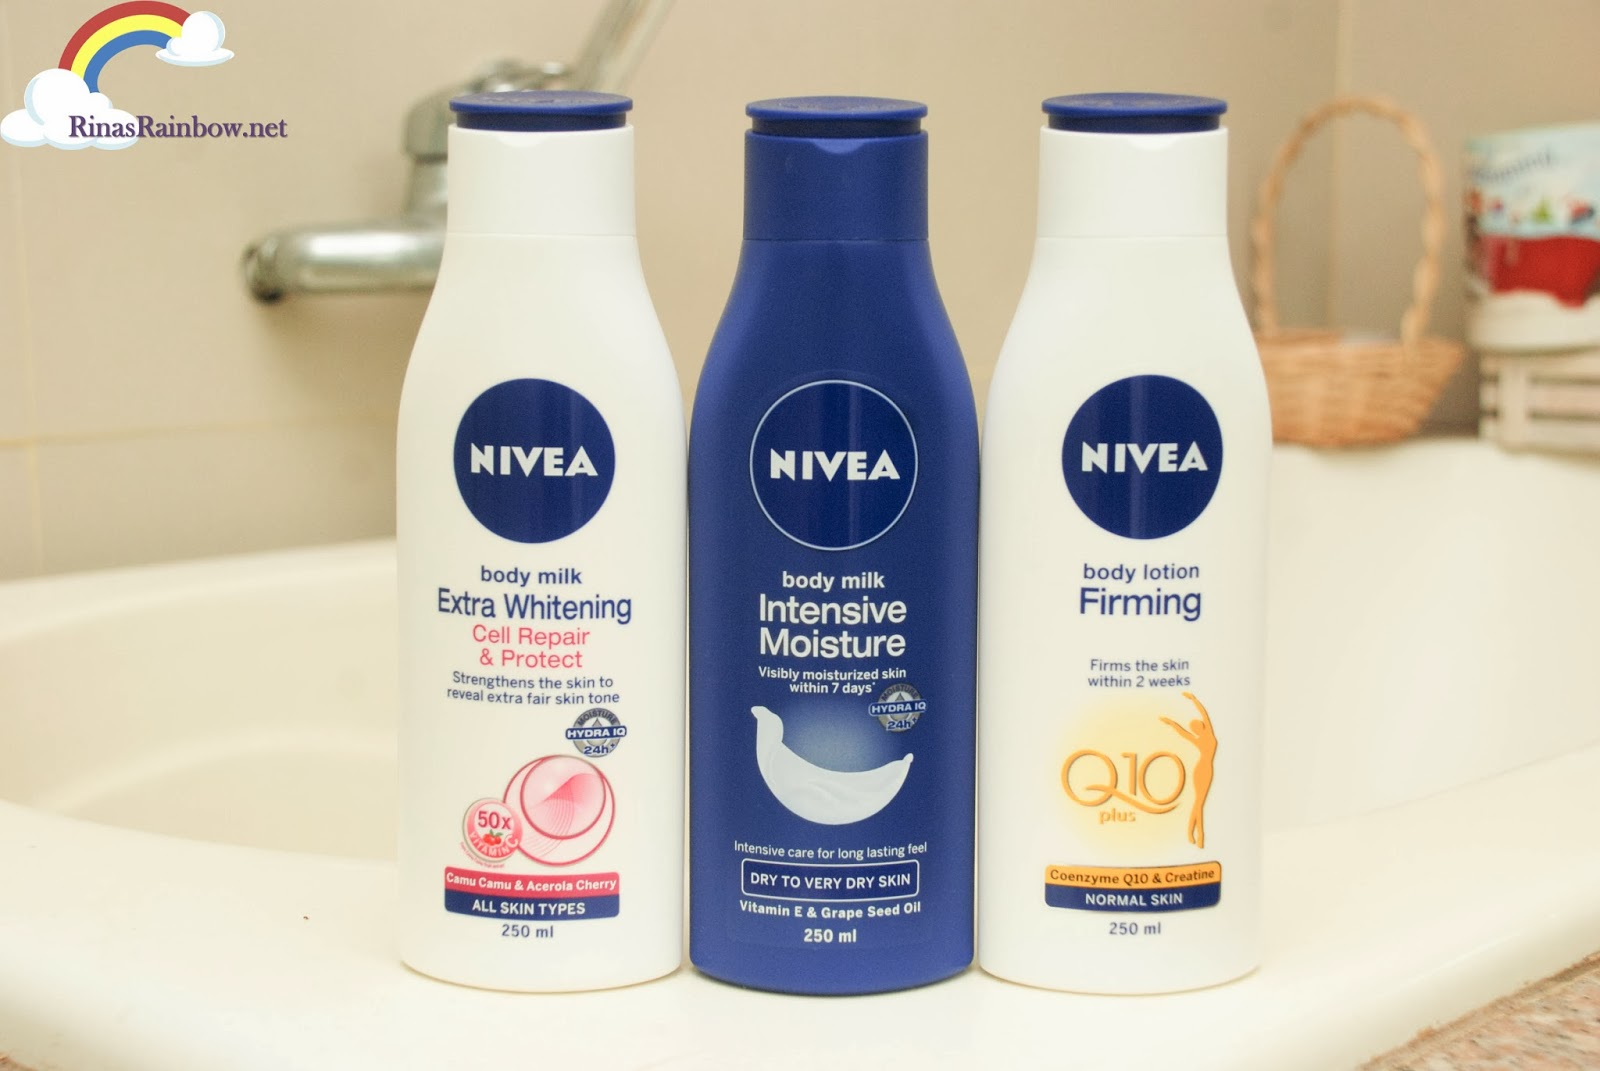 NIVEA new bottles eco friendly